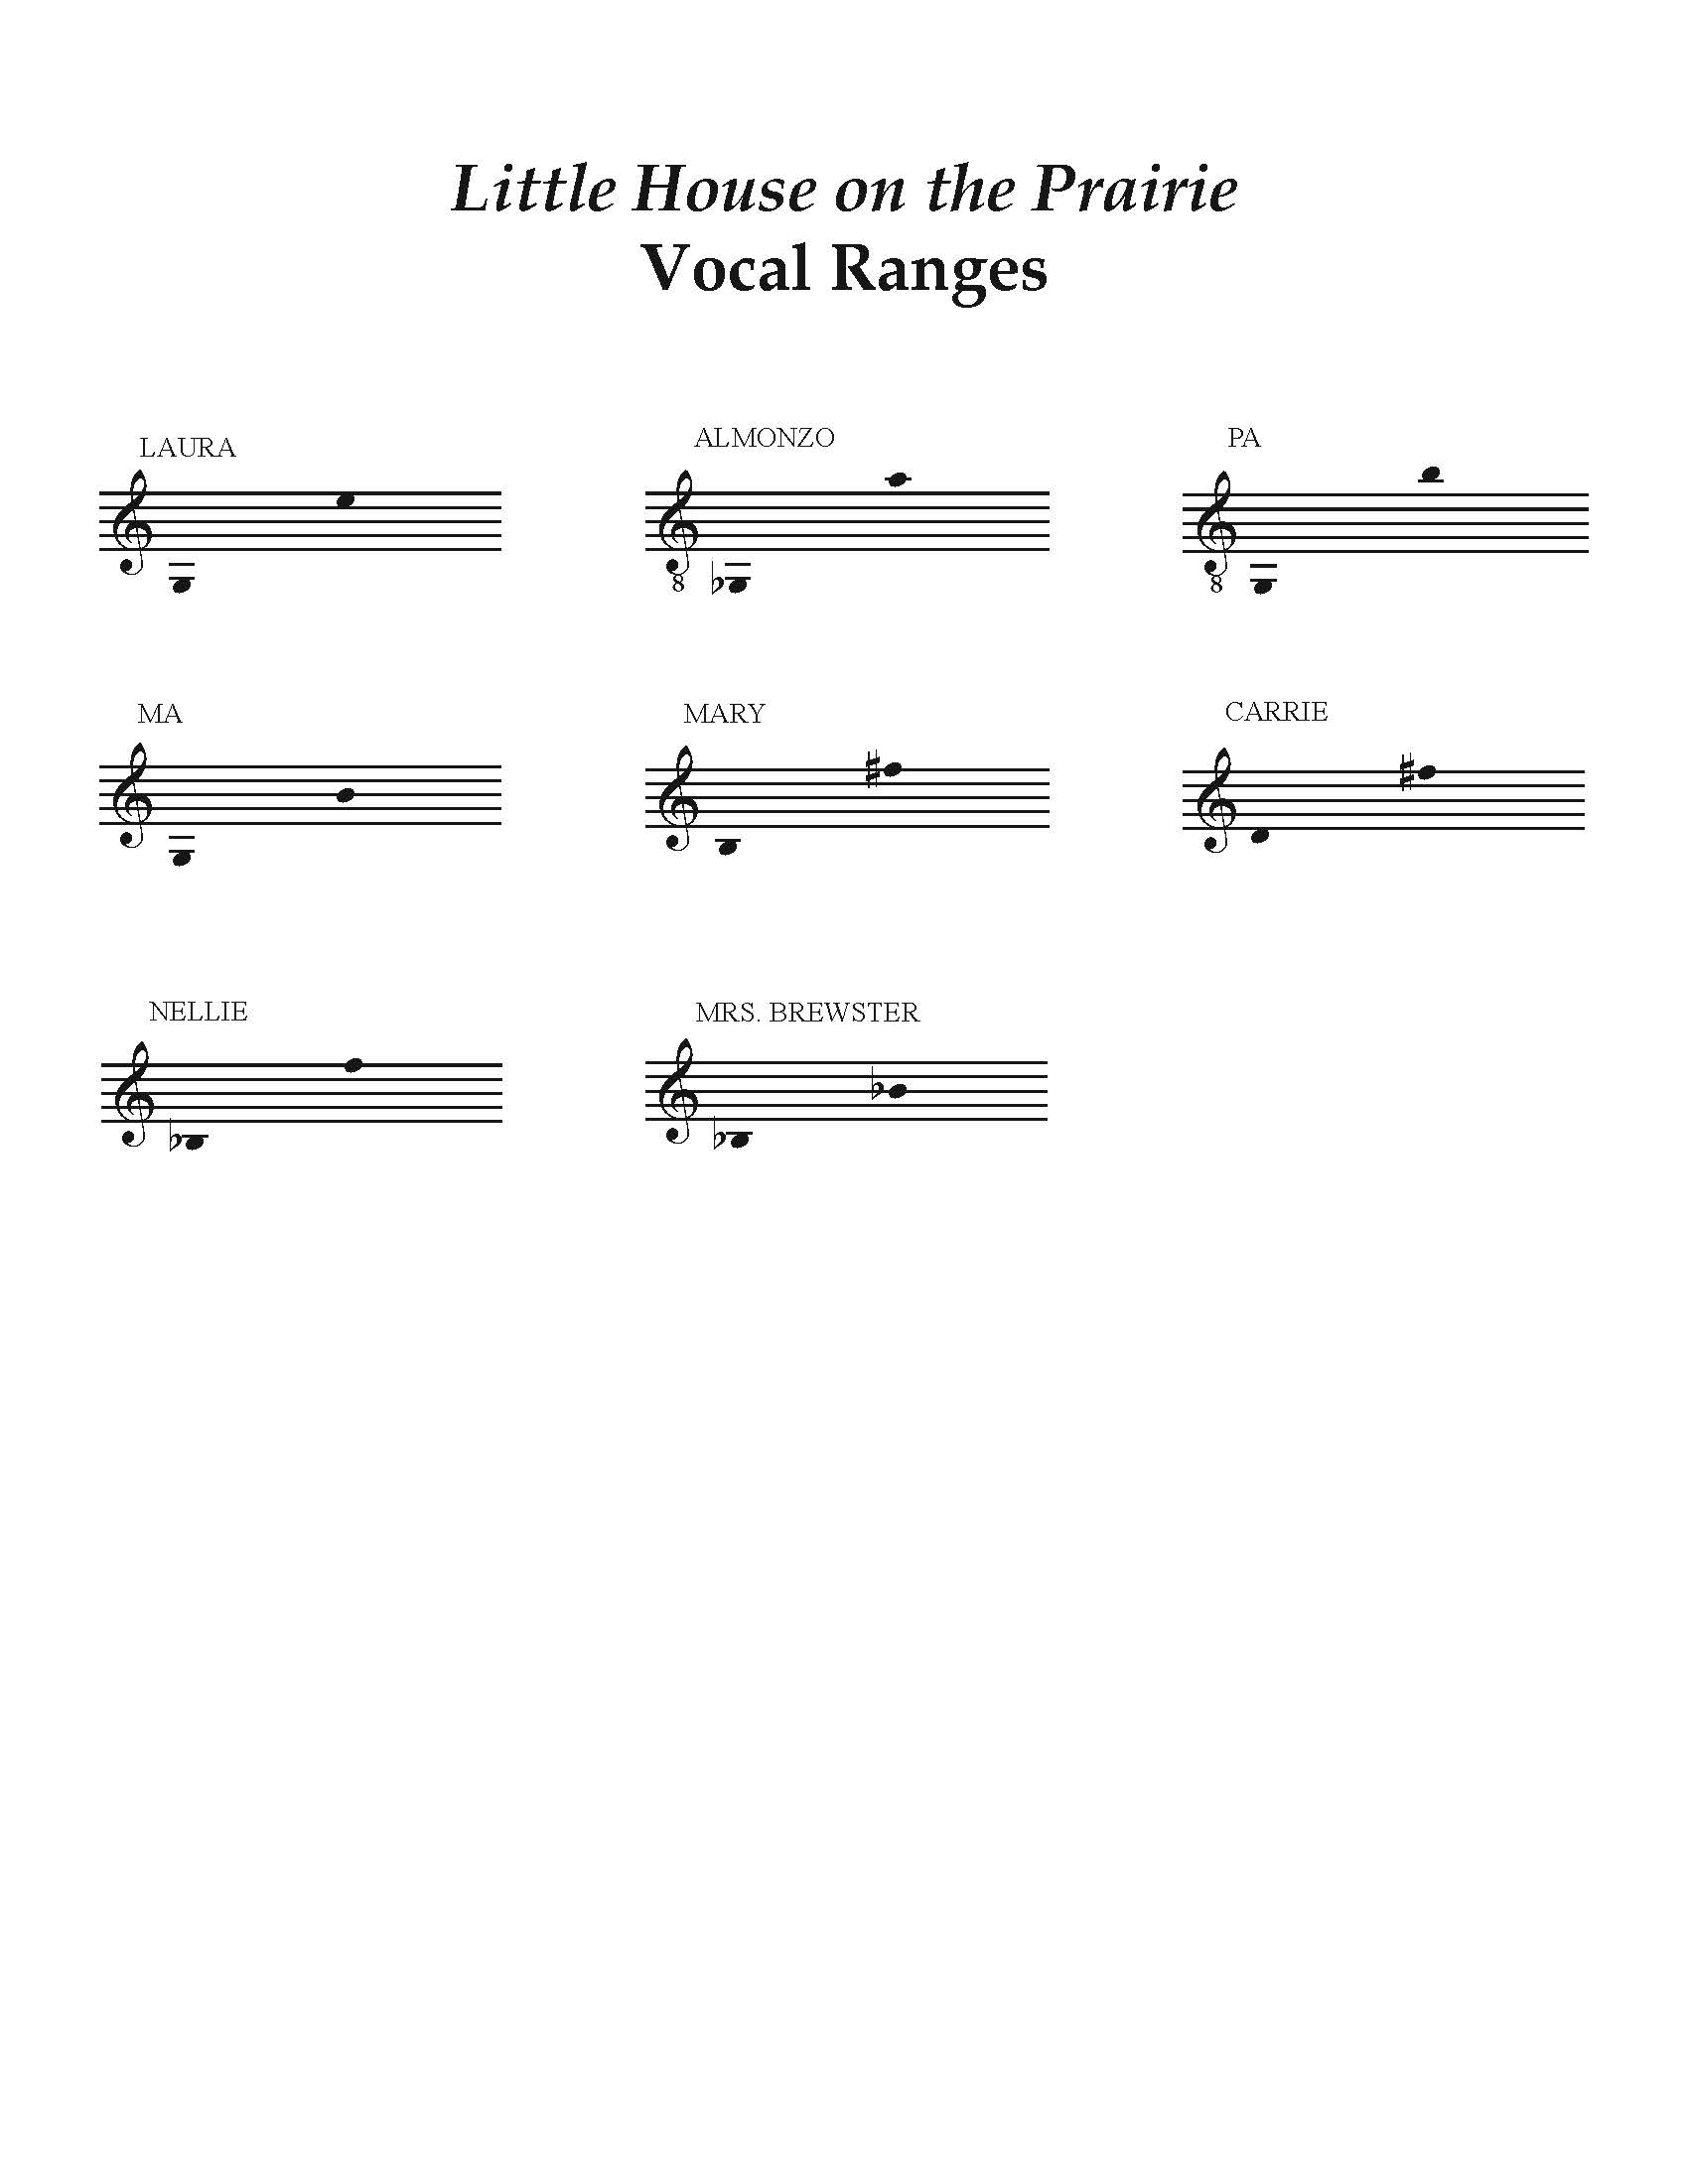 Little House on the Prairie Vocal Ranges